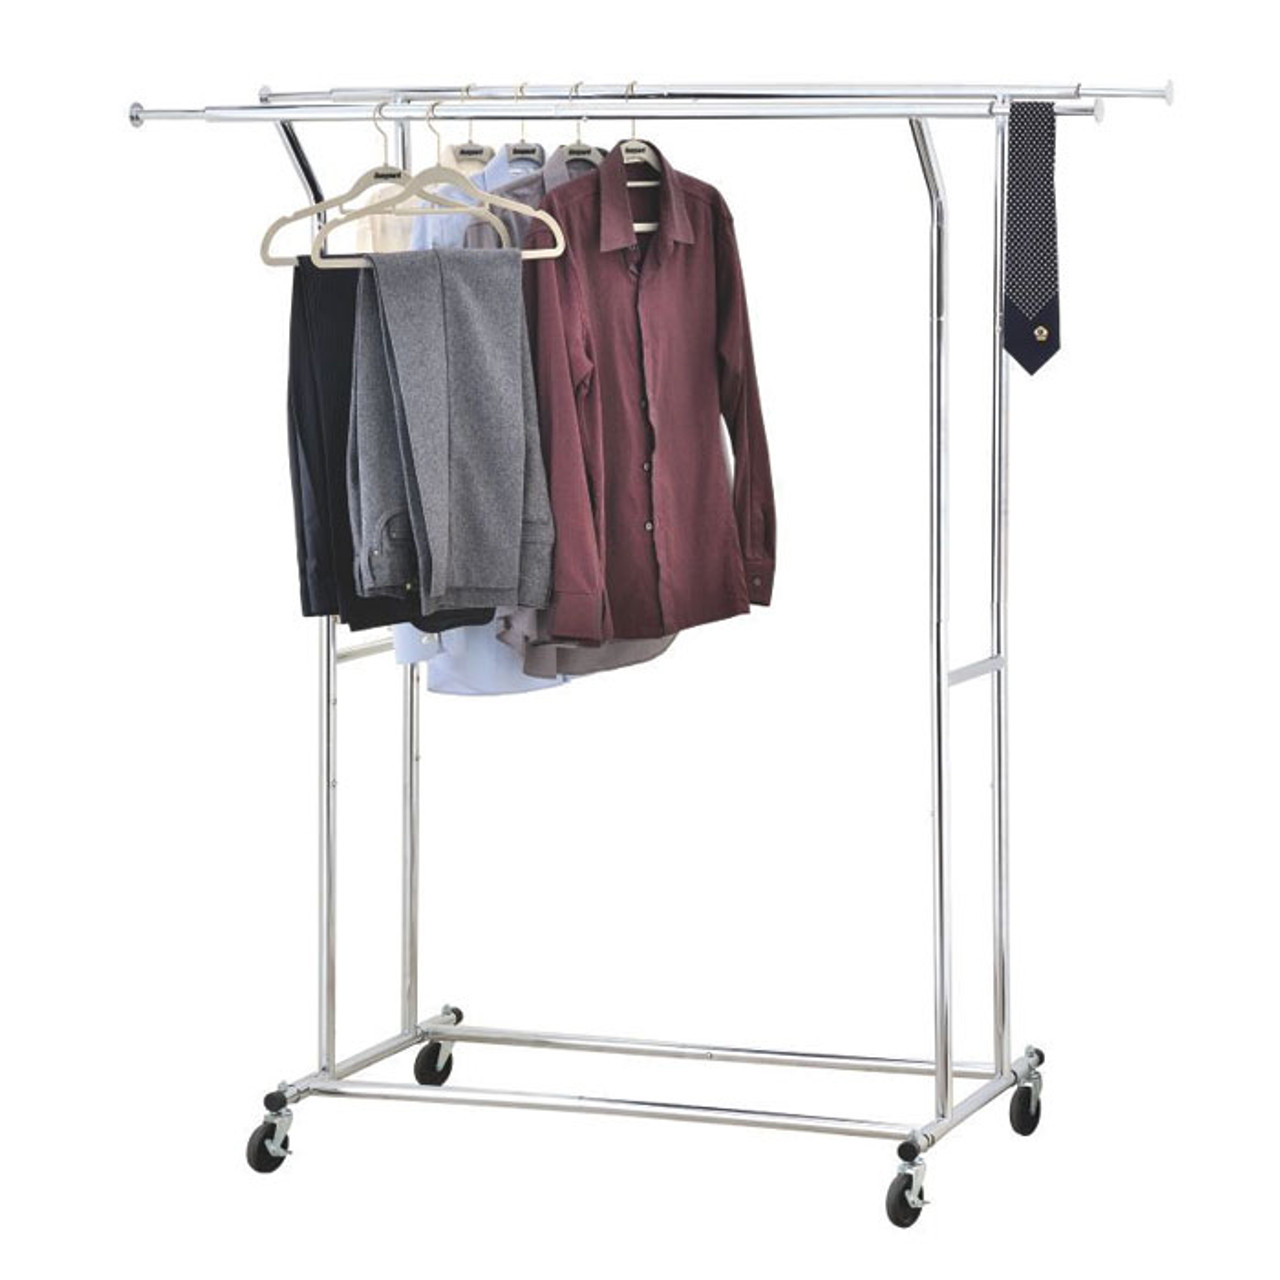 https solutions stores ca double commercial garment rack